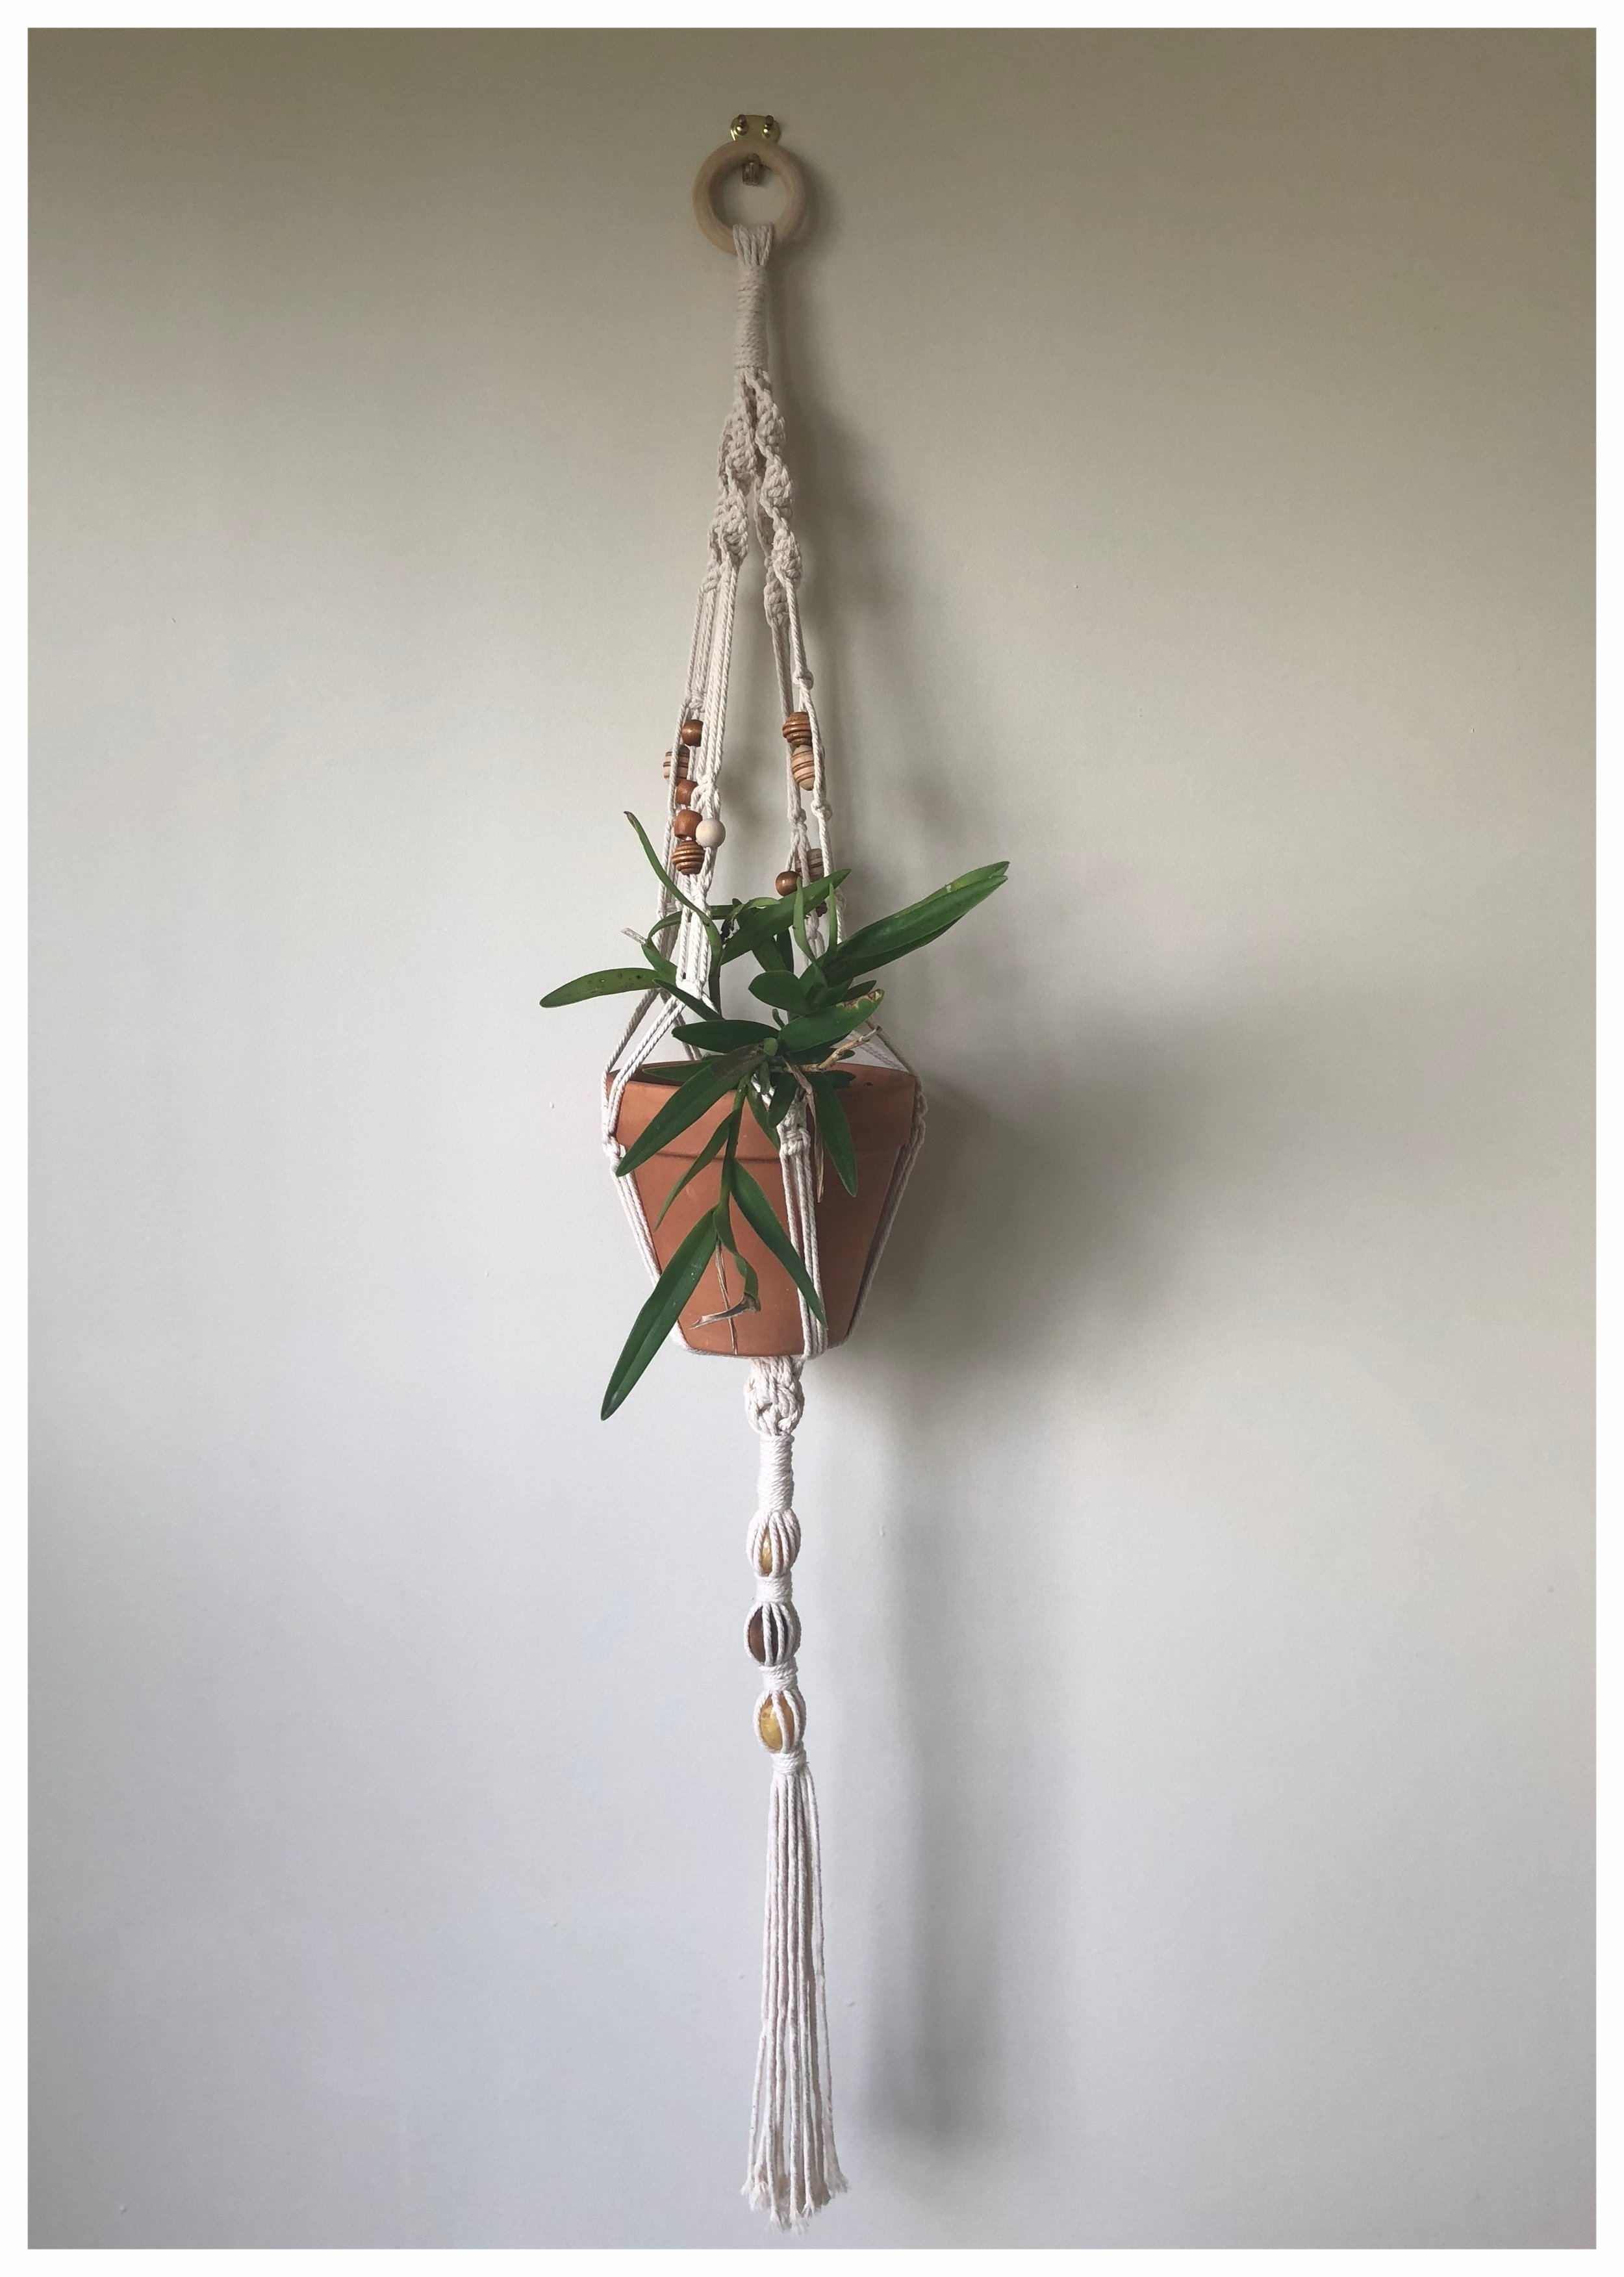 Handmade macrame plant hanger with 70's vintage bead detailing £45